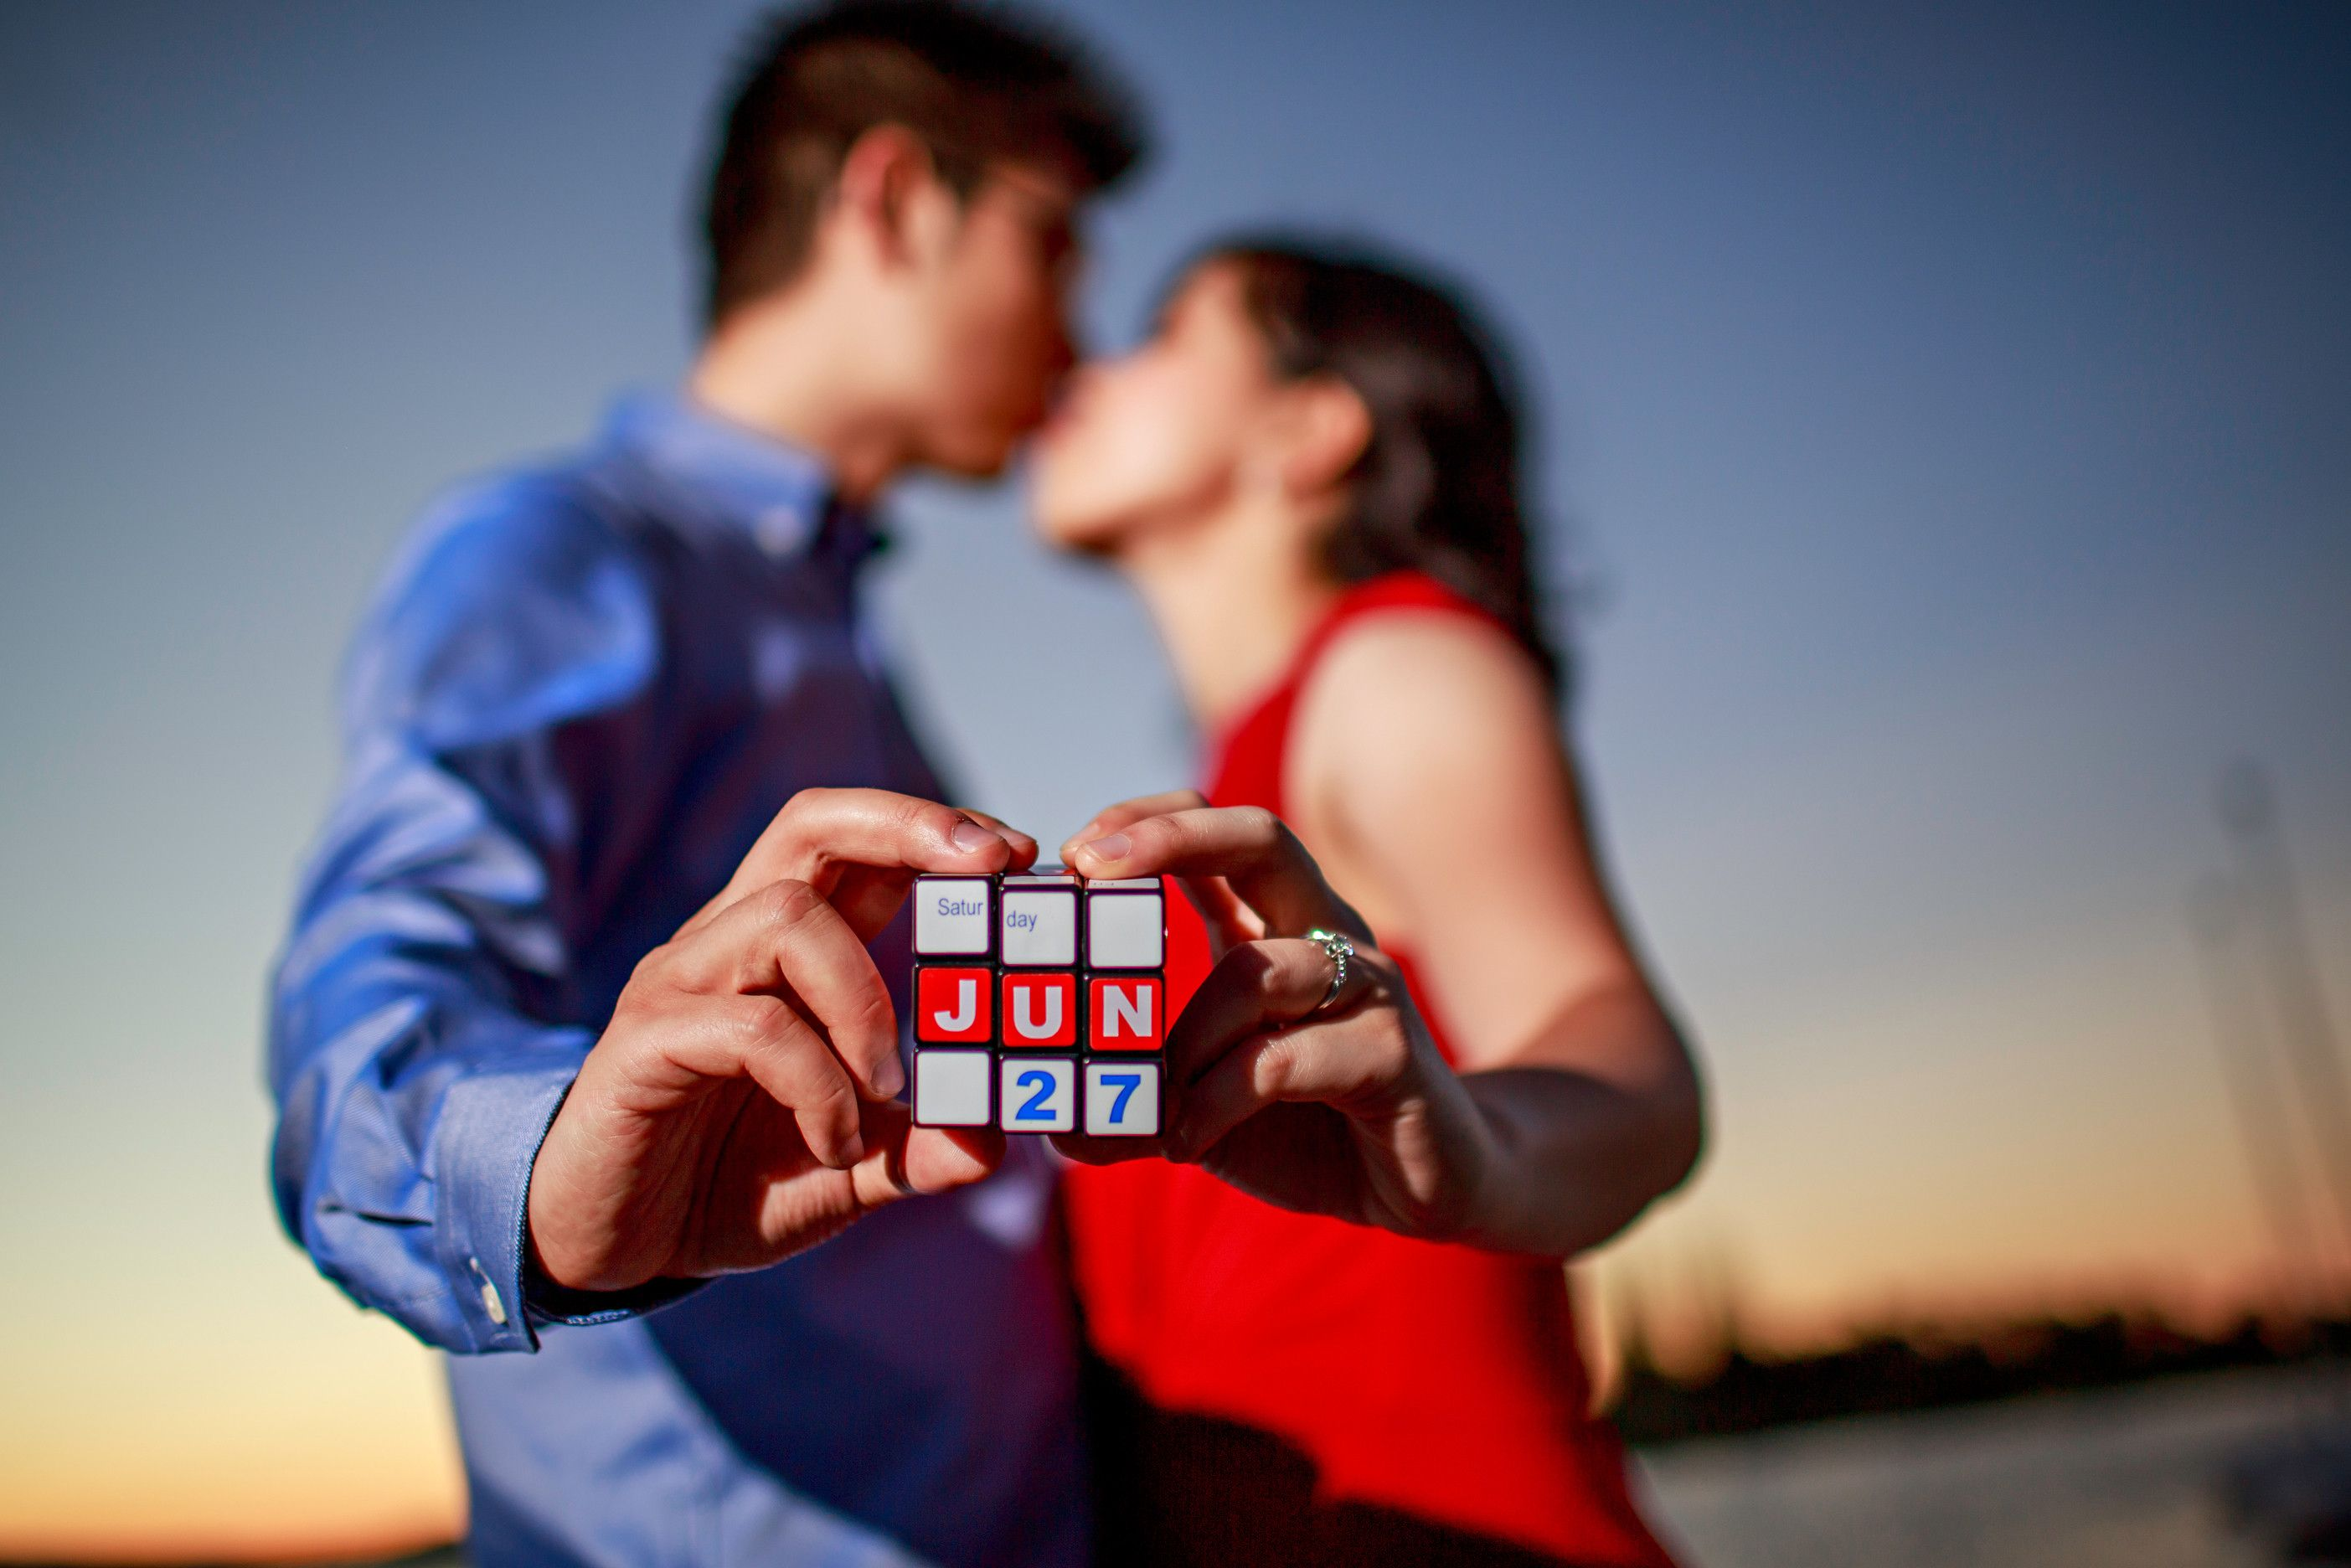 Rubik's Cube Montreal This Couple Used A Rubik S Cube To Announce Their Wedding Date